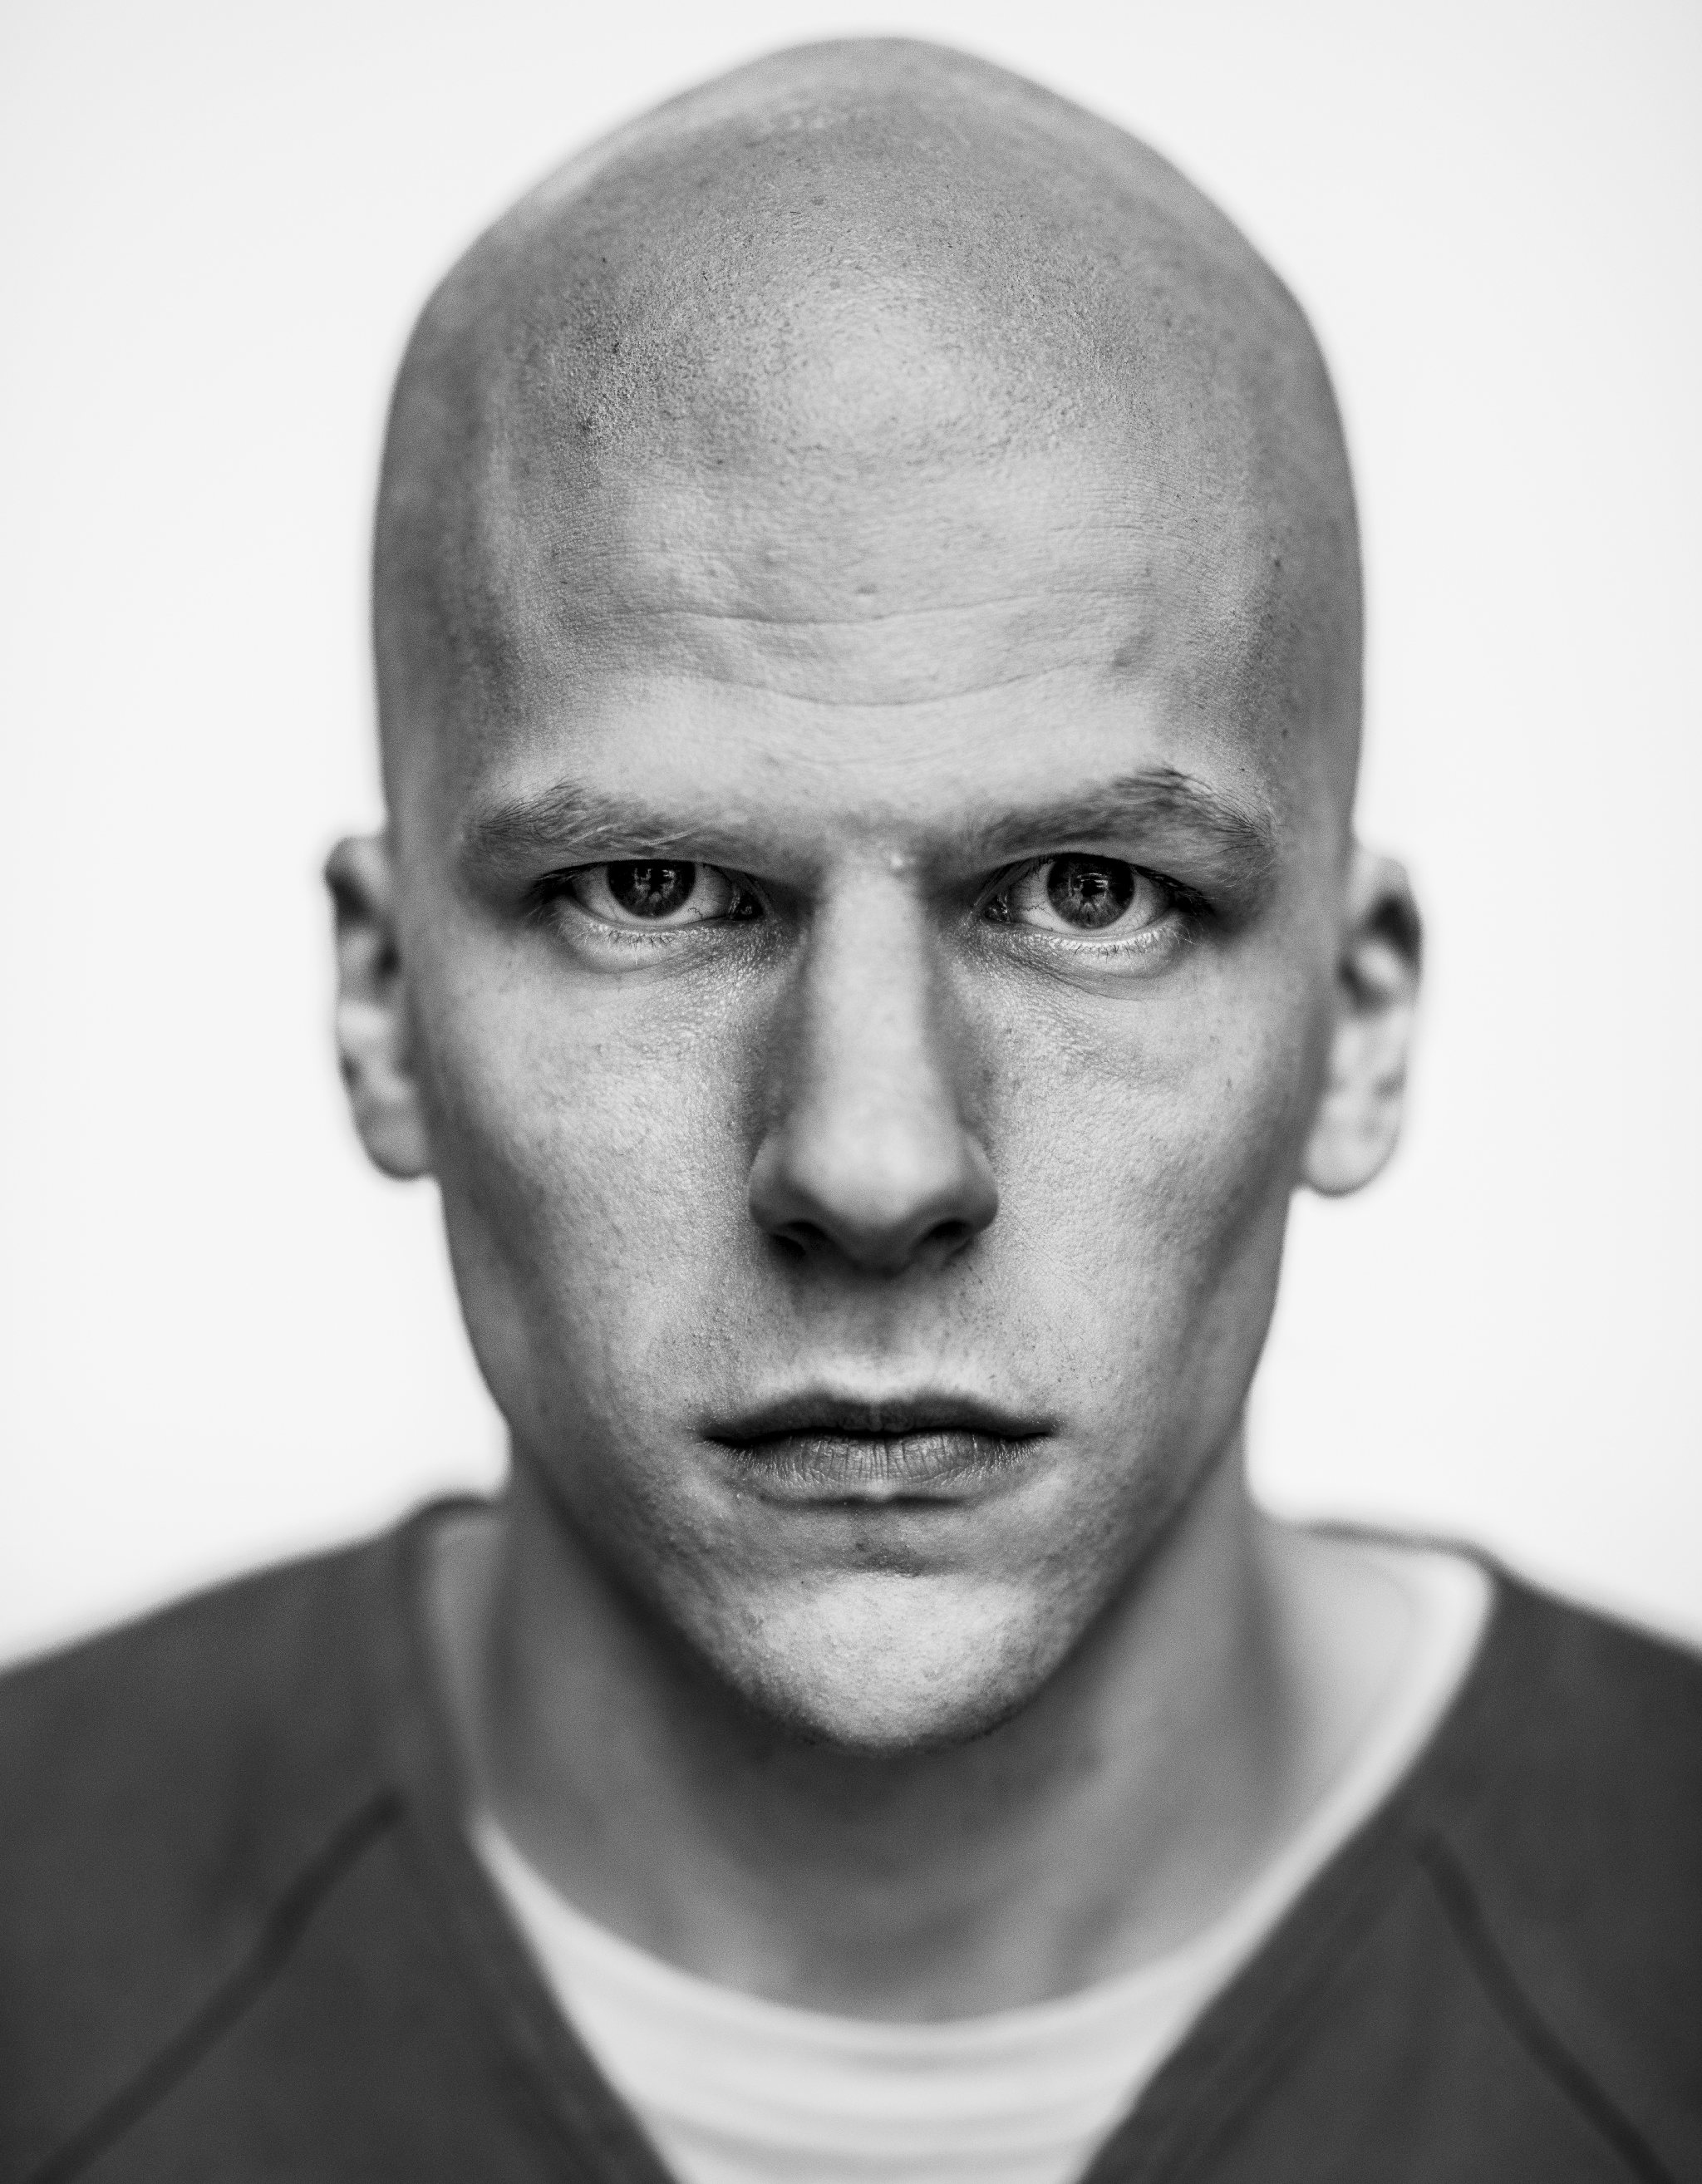 batmanvsuperman_lexluthor.jpg